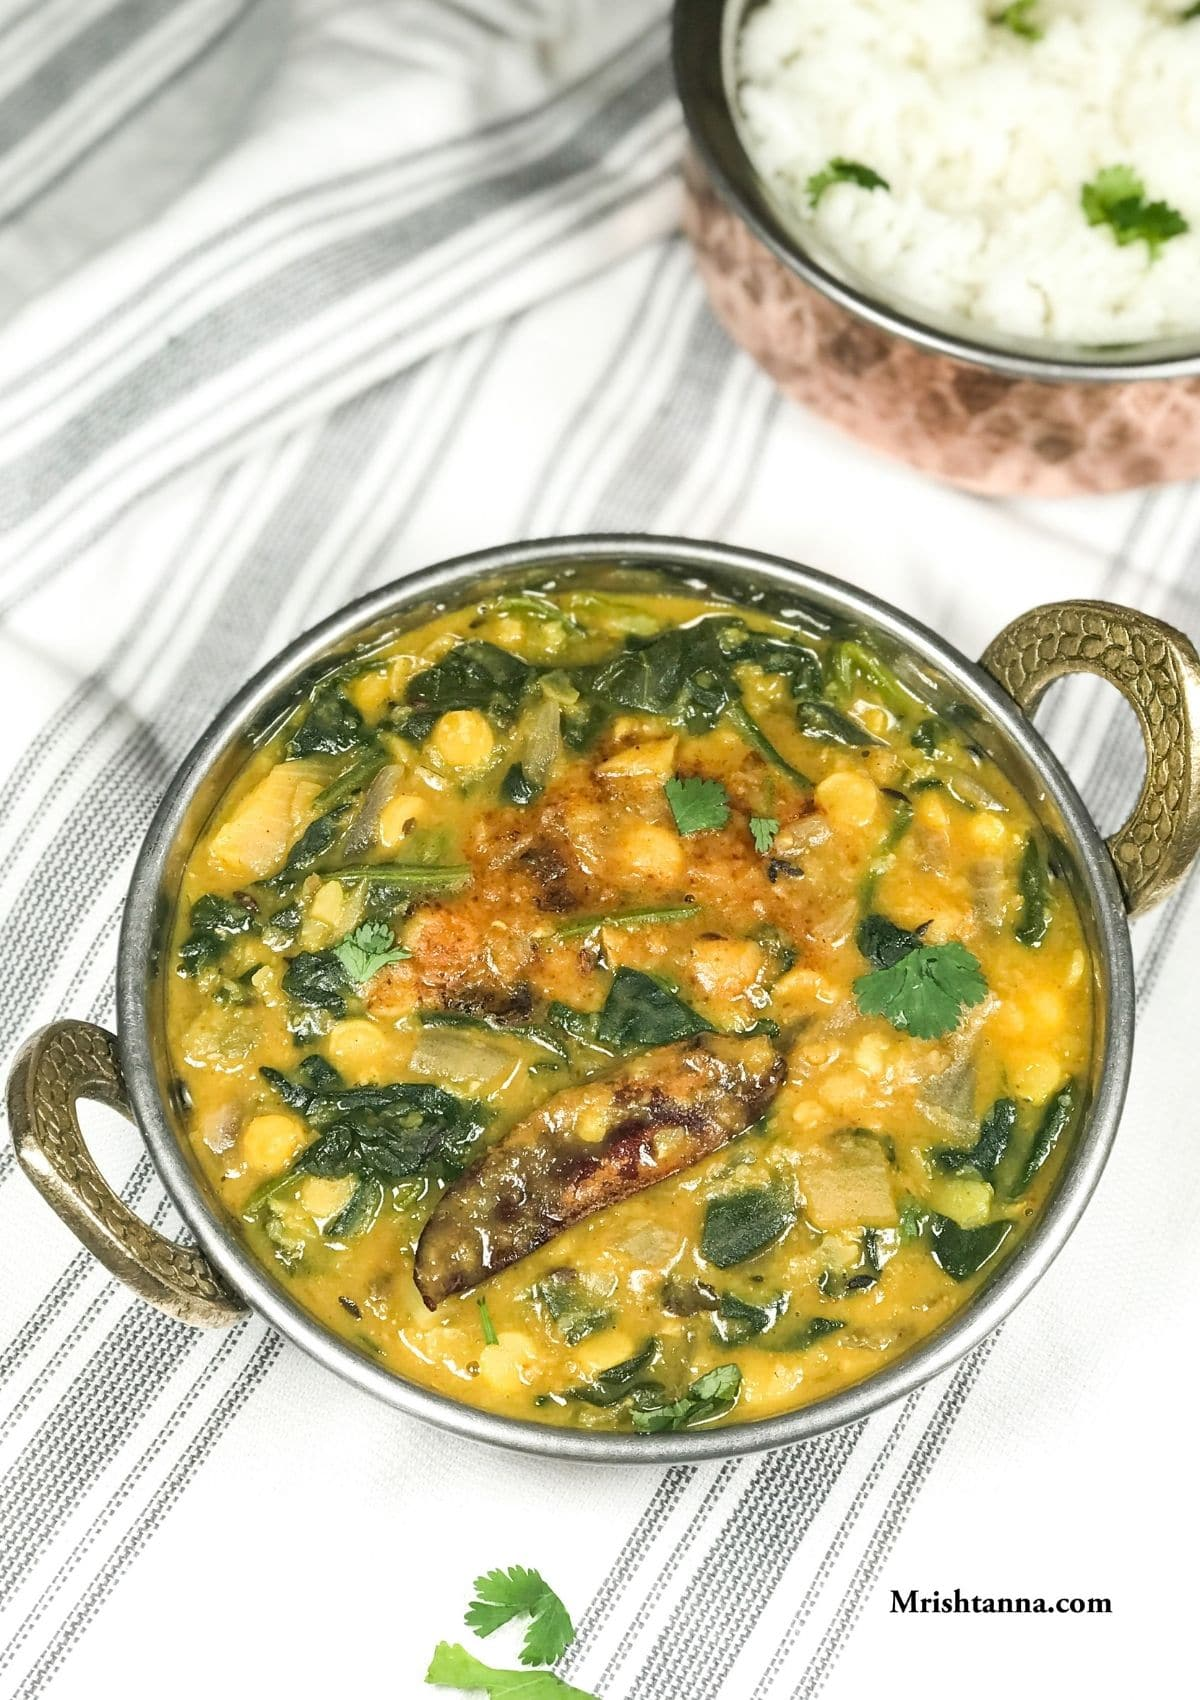 A bowl with spinach dal and garnished with red chili and cilantro